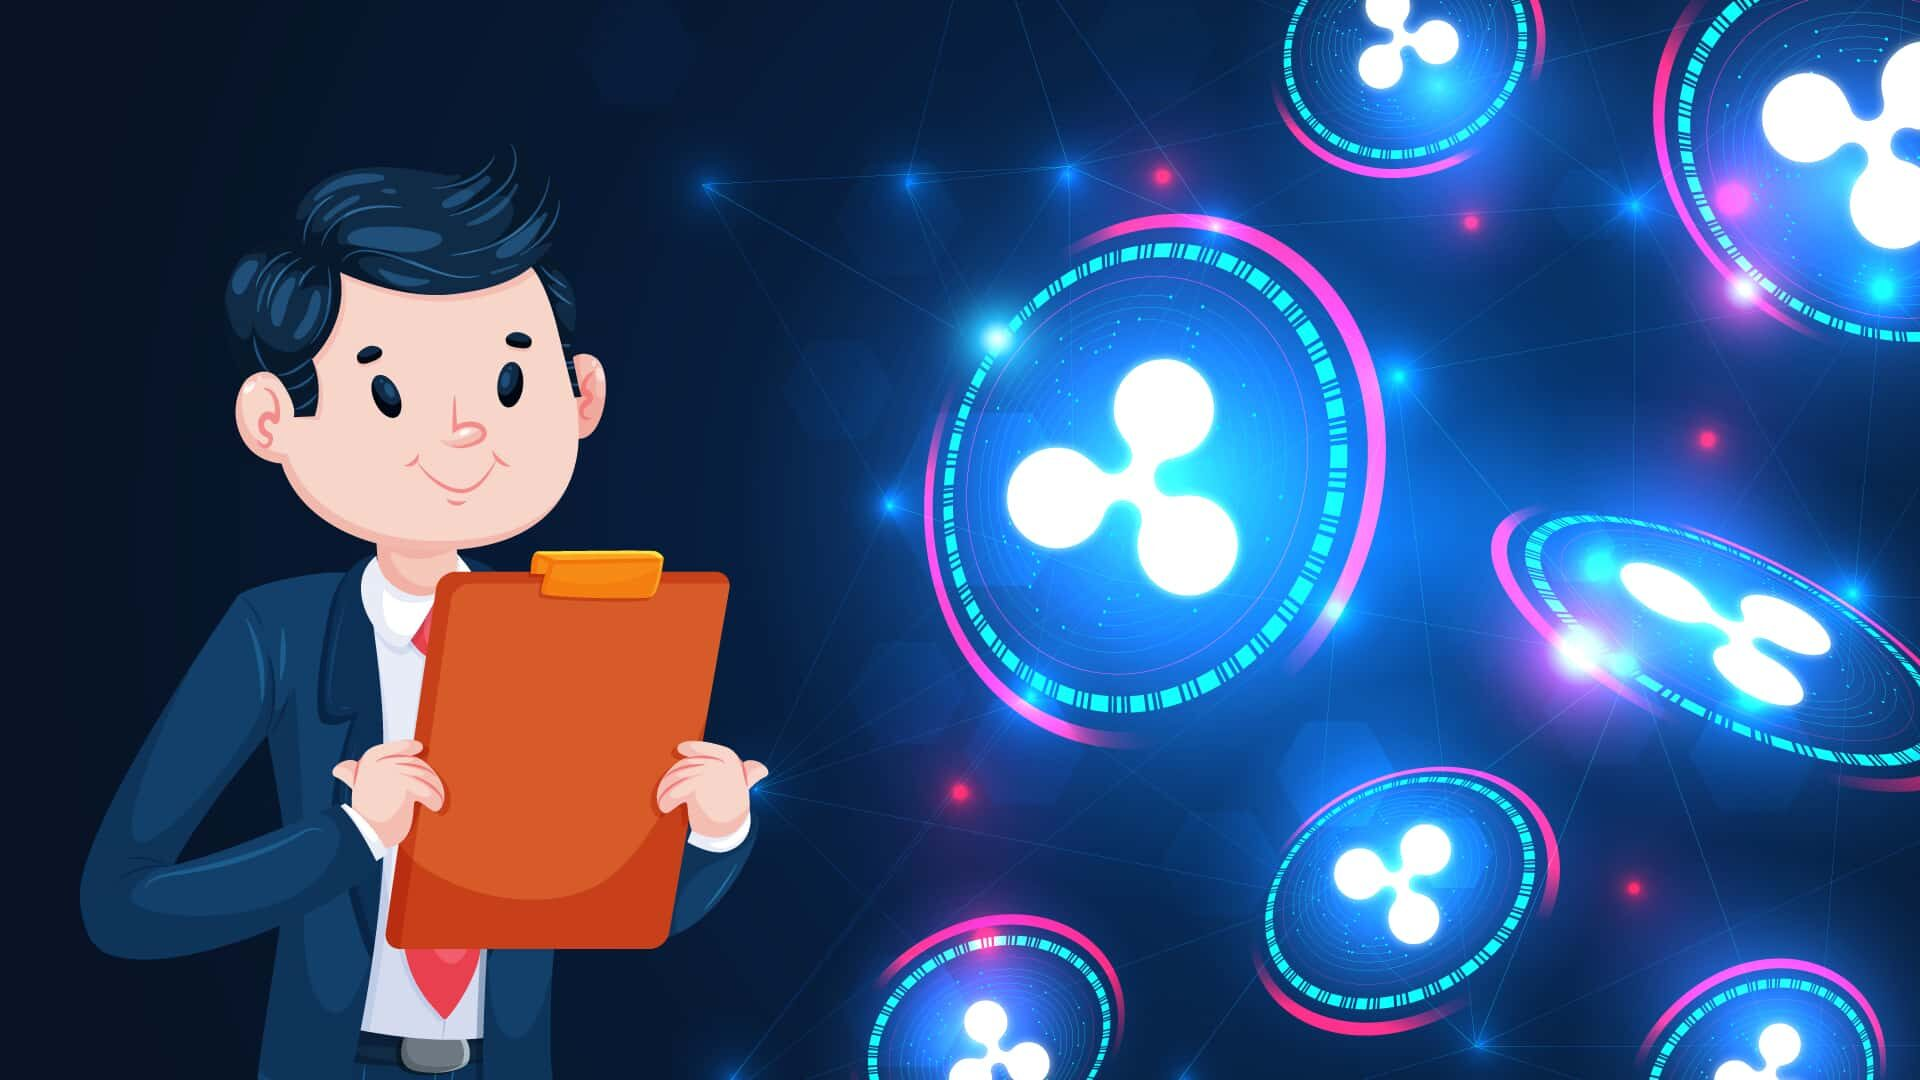 What Is Ripple Cryptocurrency Is and How Does It Work?